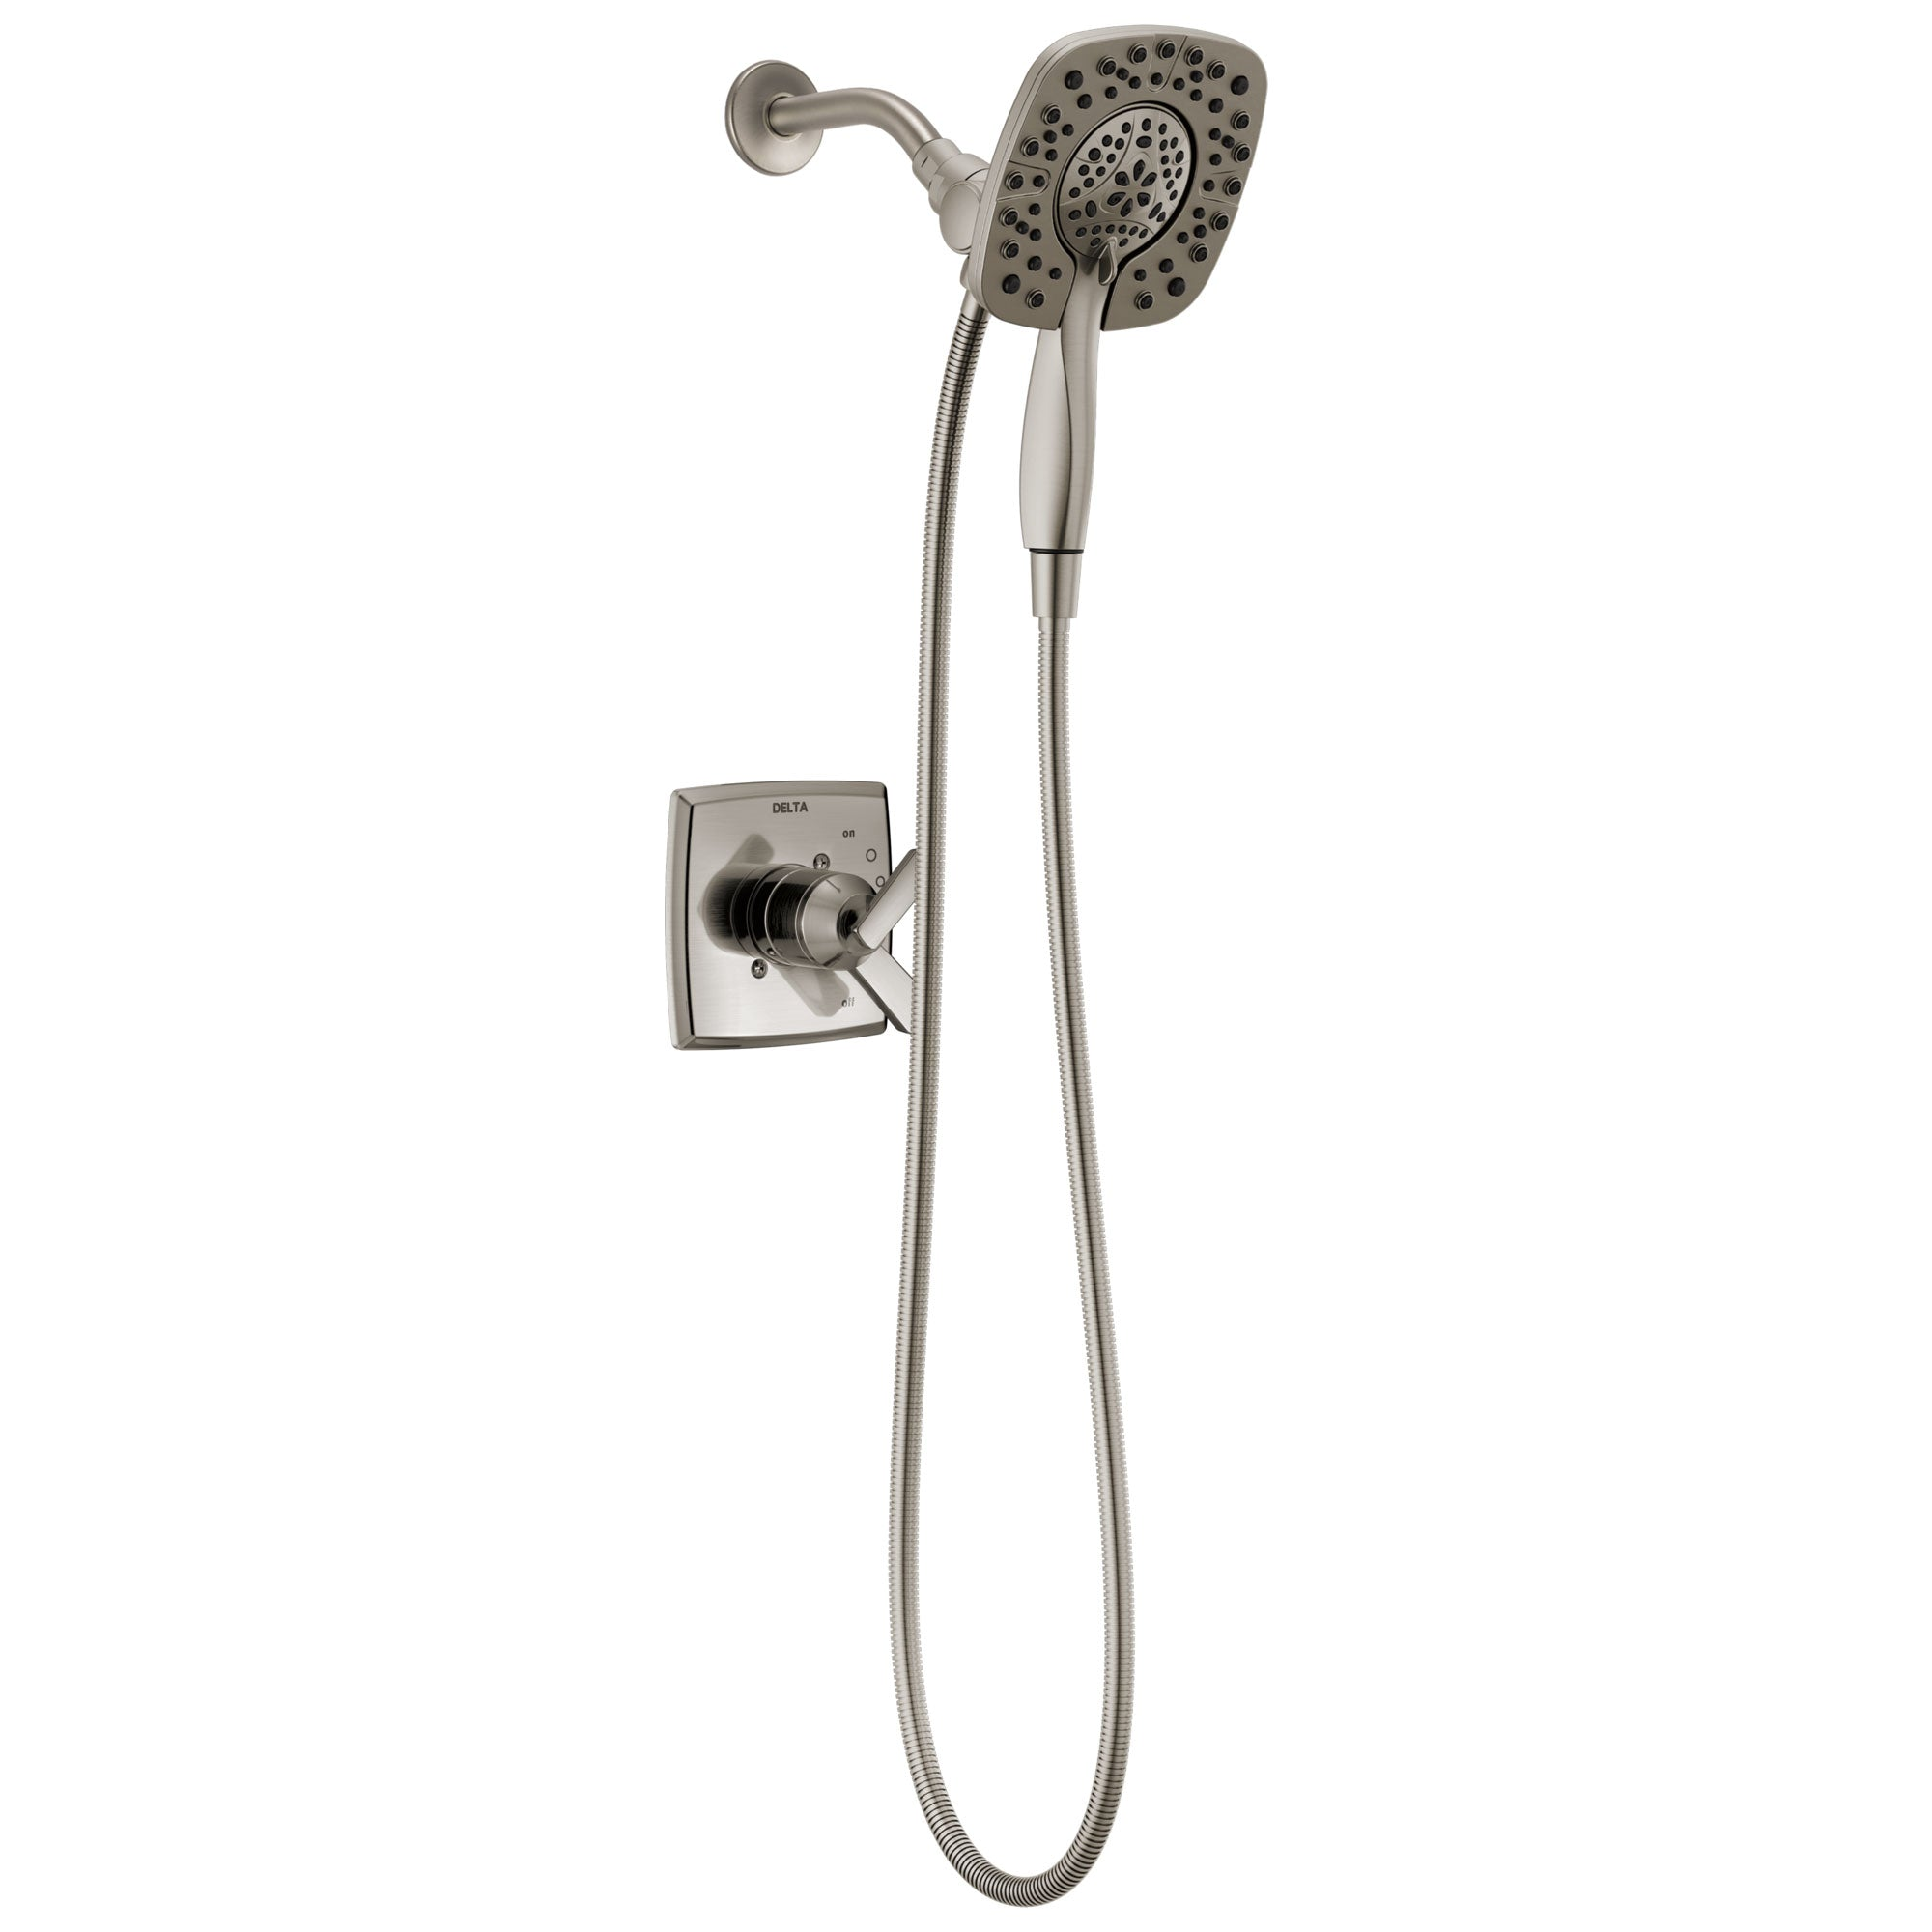 Delta Ashlyn Stainless Steel Finish Monitor 17 Series Shower Only Faucet with In2ition Two-in-One Hand Shower Spray INCLUDES Rough-in Valve D1132V